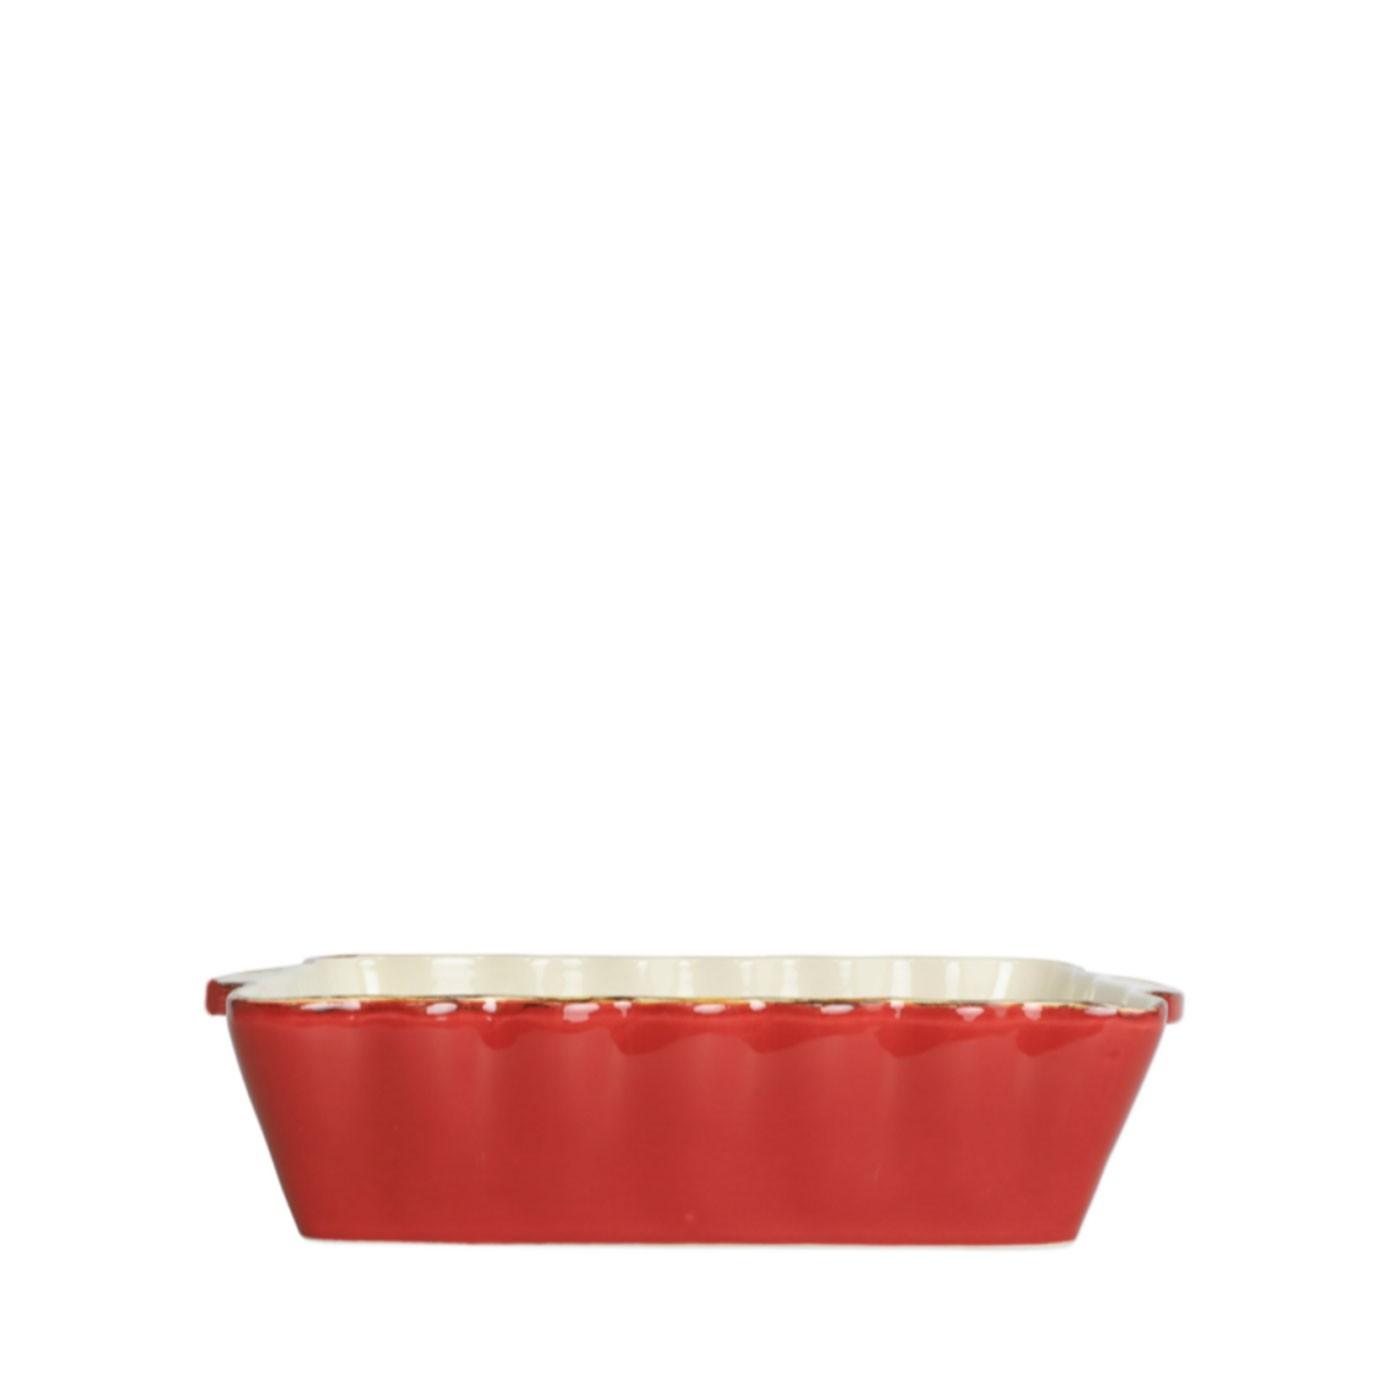 Italian Bakers Red Medium Rectangular Baker